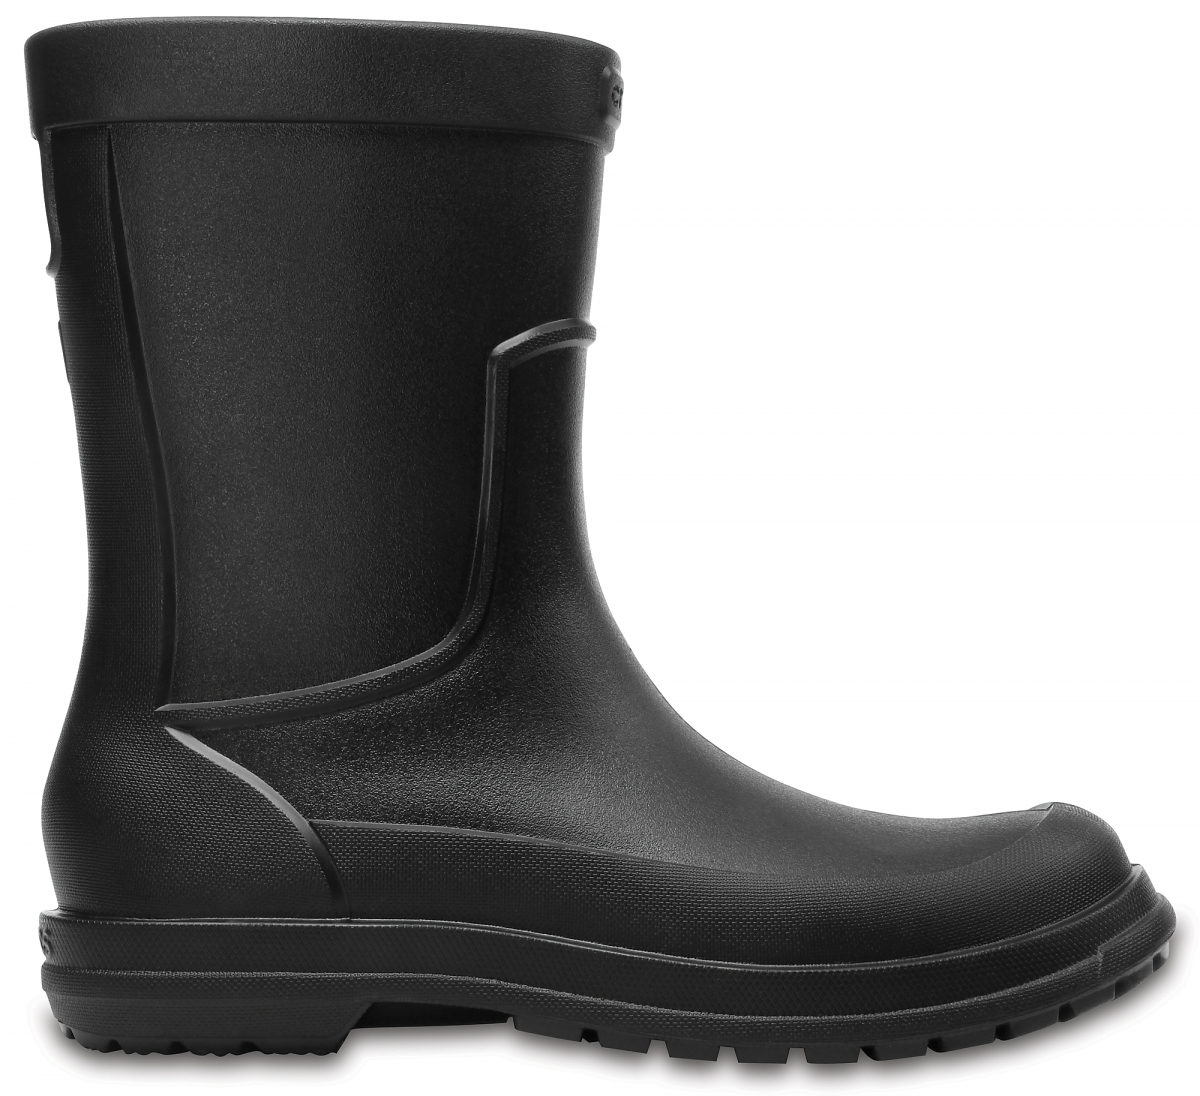 Crocs AllCast Rain Boot Men - Black, M12 (46-47)